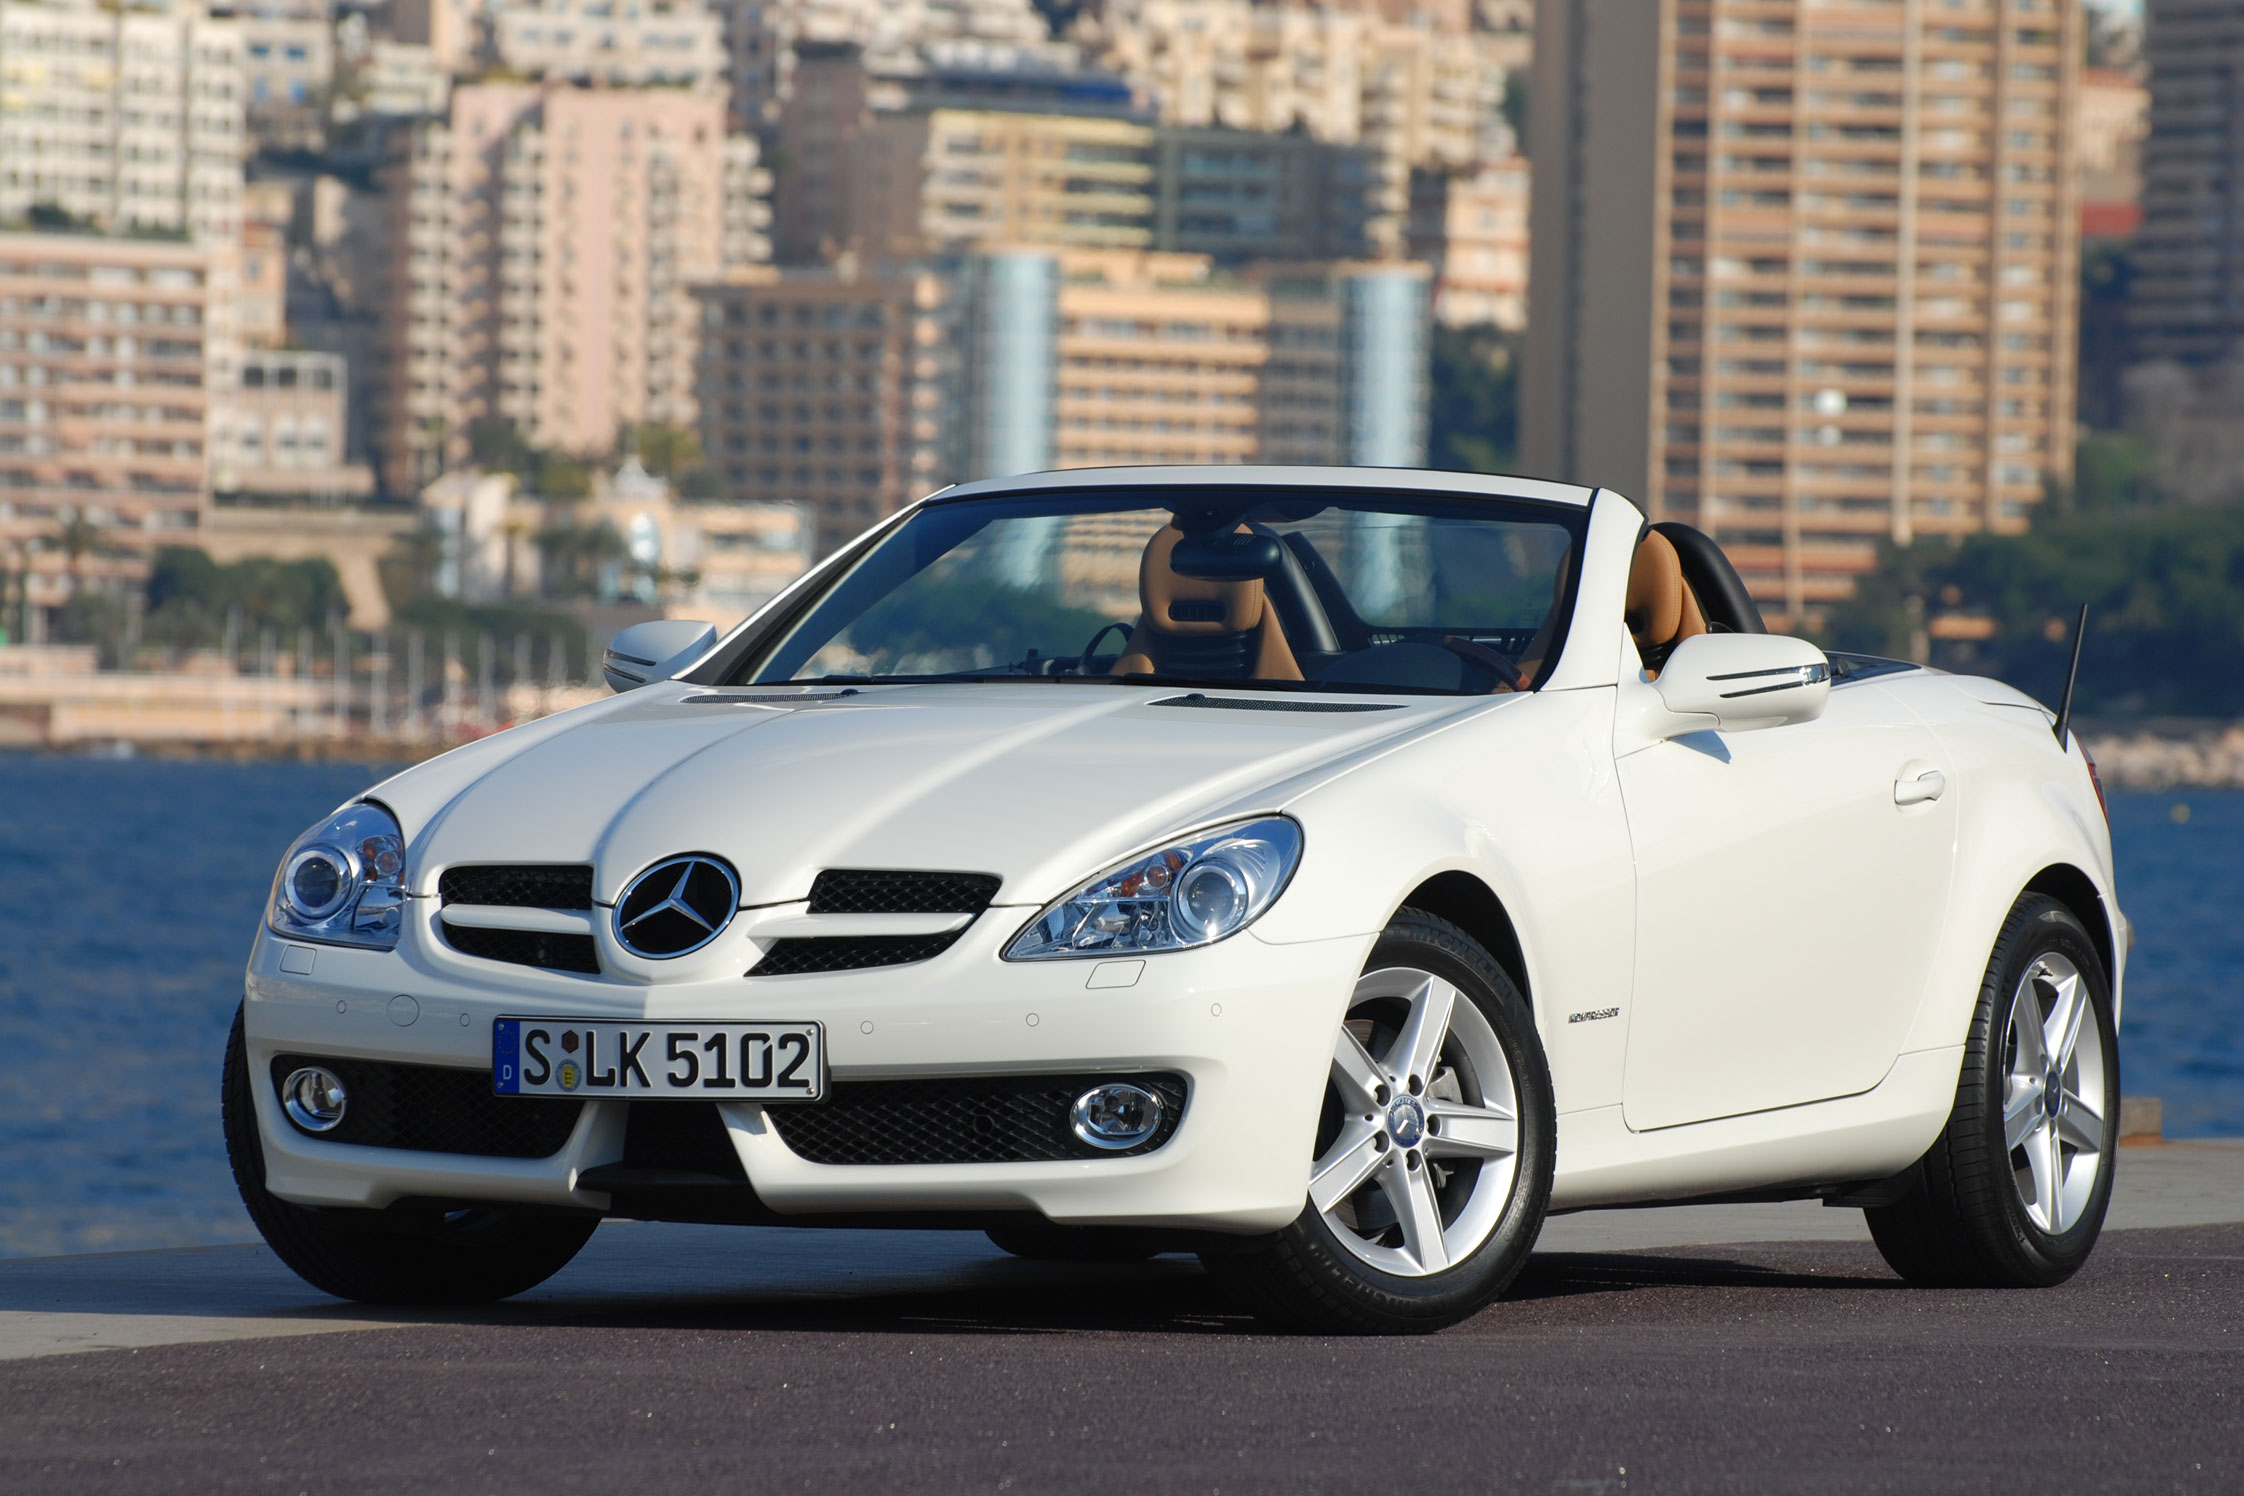 photo mercedes classe slk r171 350 272ch cabriolet 2008 m diatheque. Black Bedroom Furniture Sets. Home Design Ideas